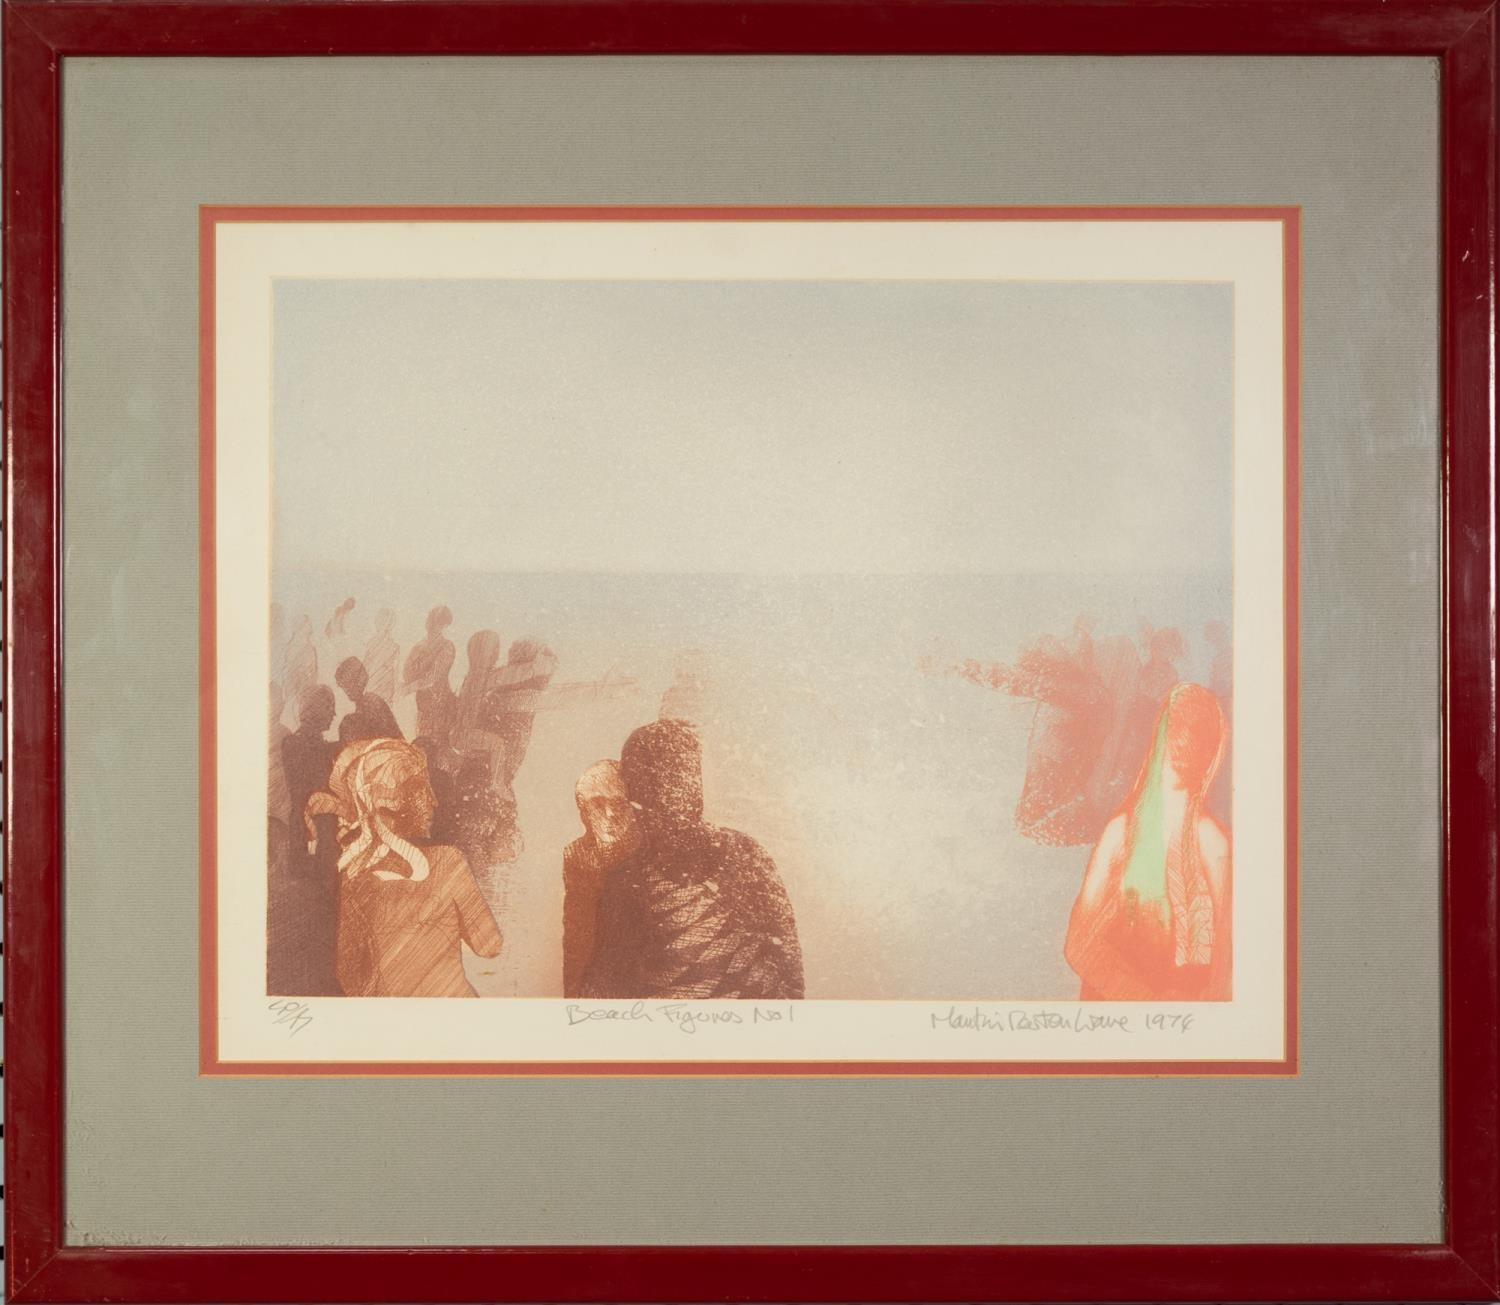 MARTIN WAVE (MODERN) ARTIST SIGNED LIMITED EDITION COLOUR PRINT ?Beach Figures No 1?, (50/75) 12? - Image 2 of 2